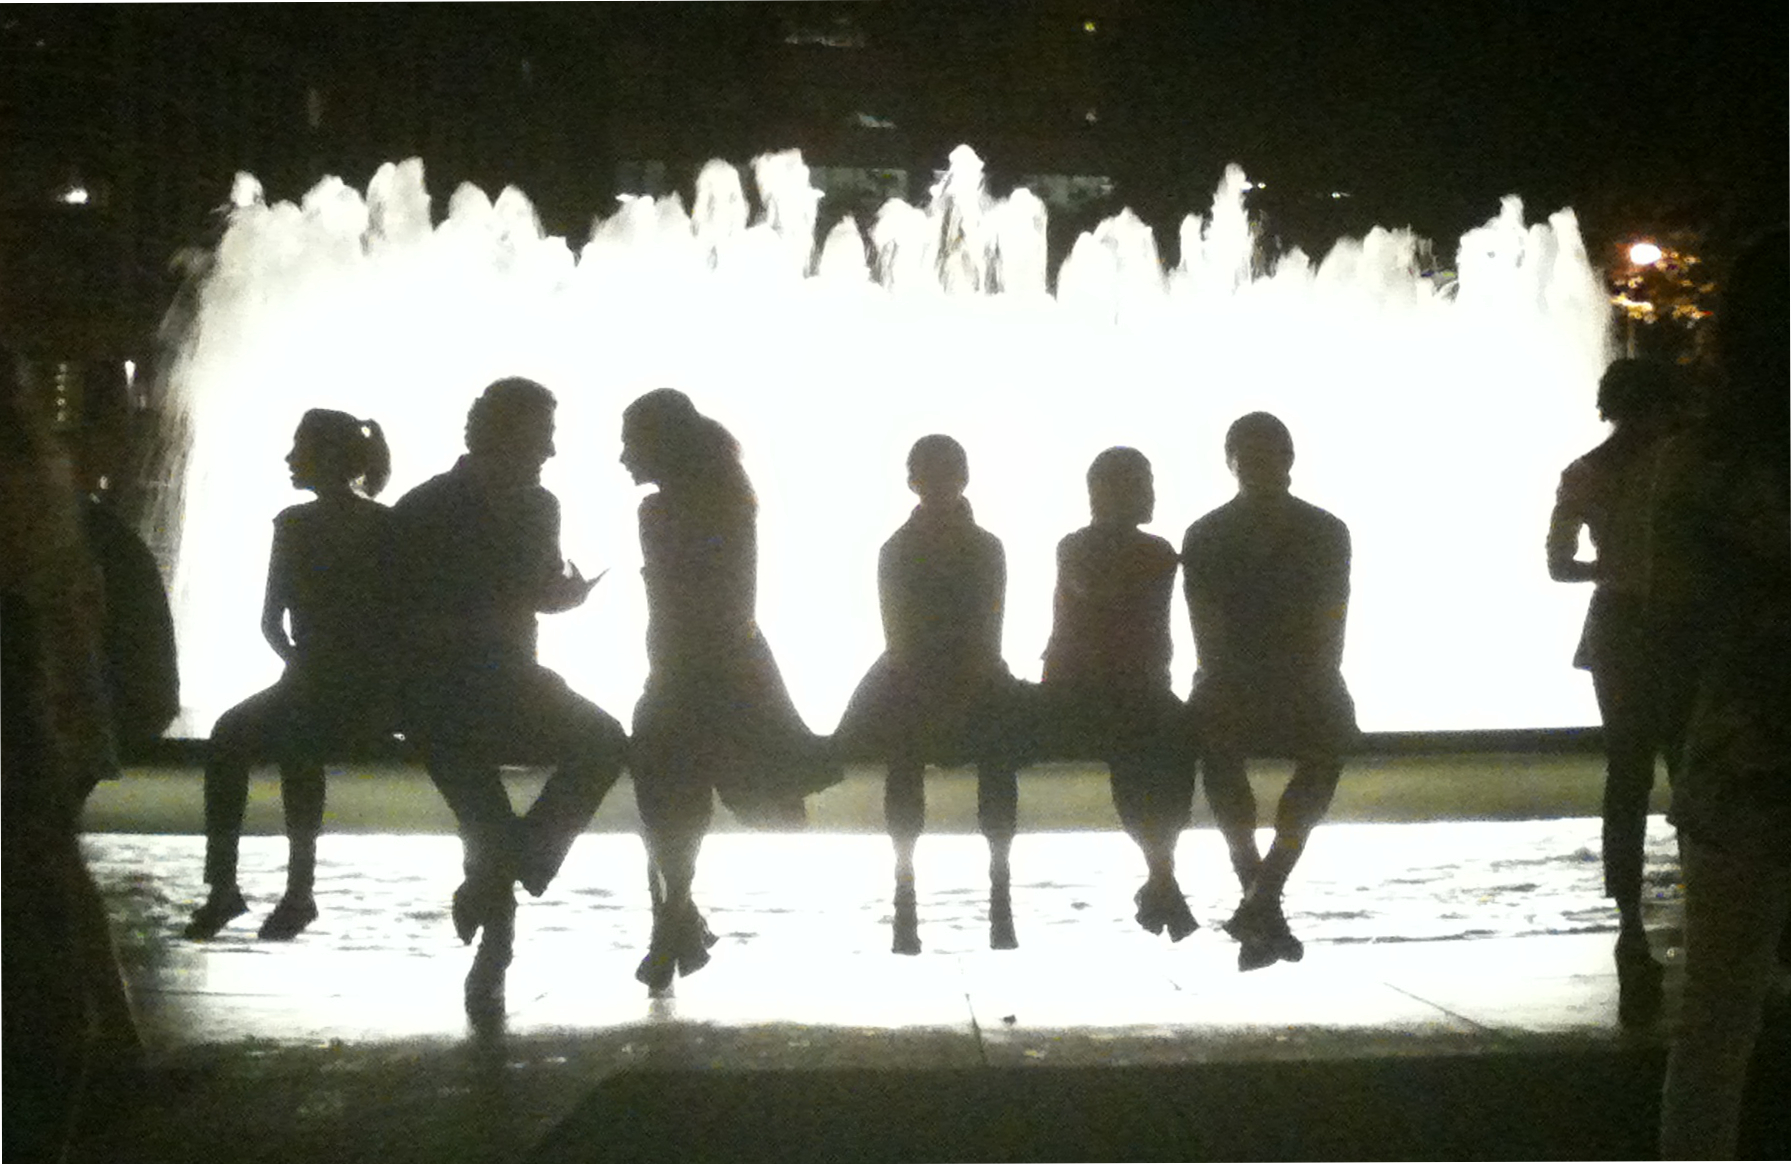 The Fountain at Lincoln Center